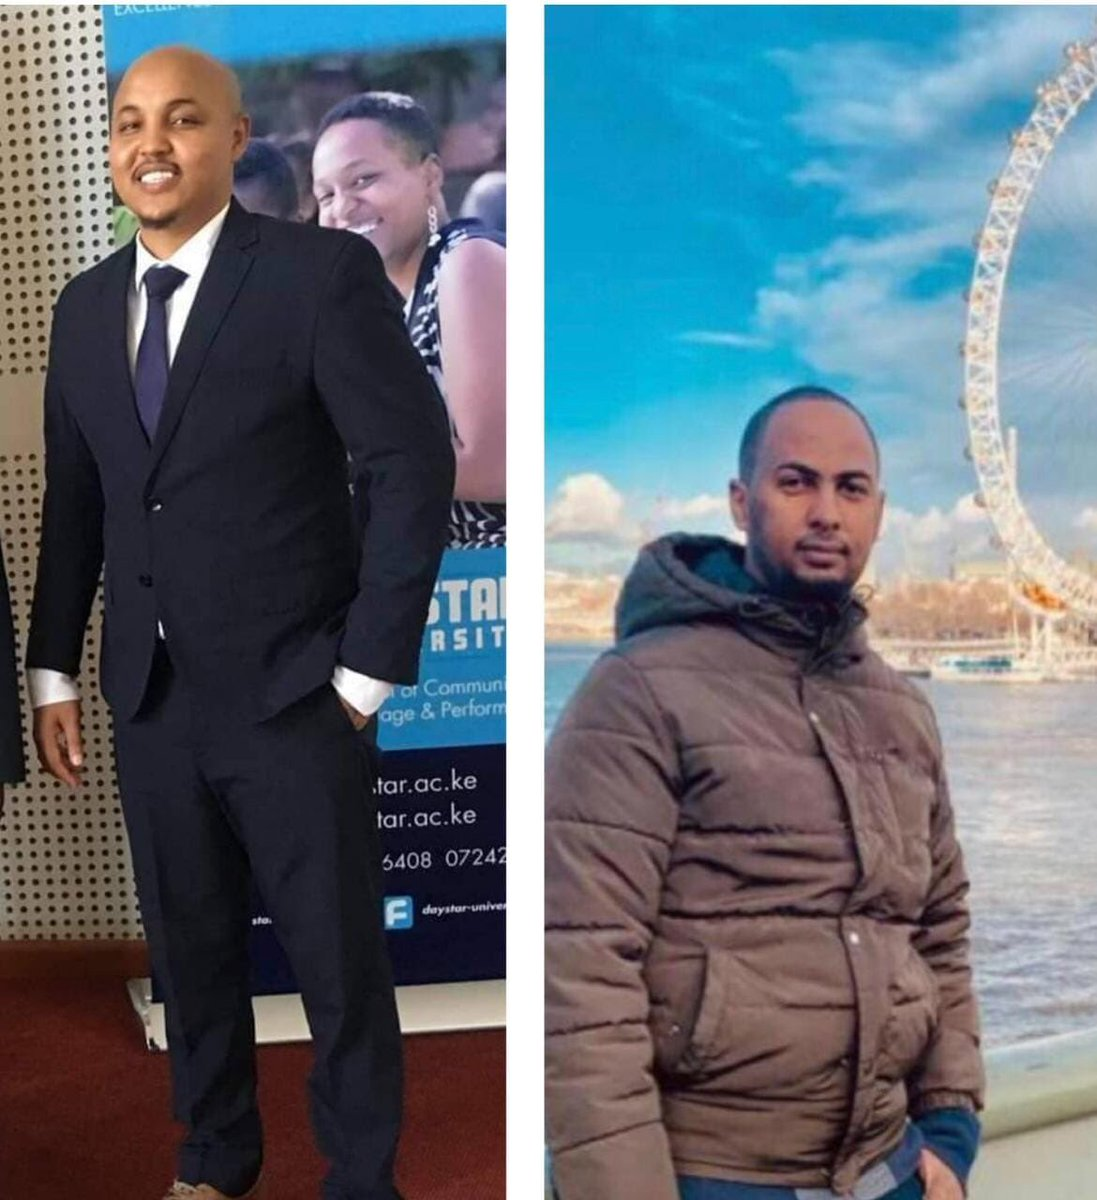 Abdallah Works For International NGO Adam Smith Was Having Lunch With His Best Friend Feisal Ahmed When Alshabaab Militants Sprayed Bullets At Their Table